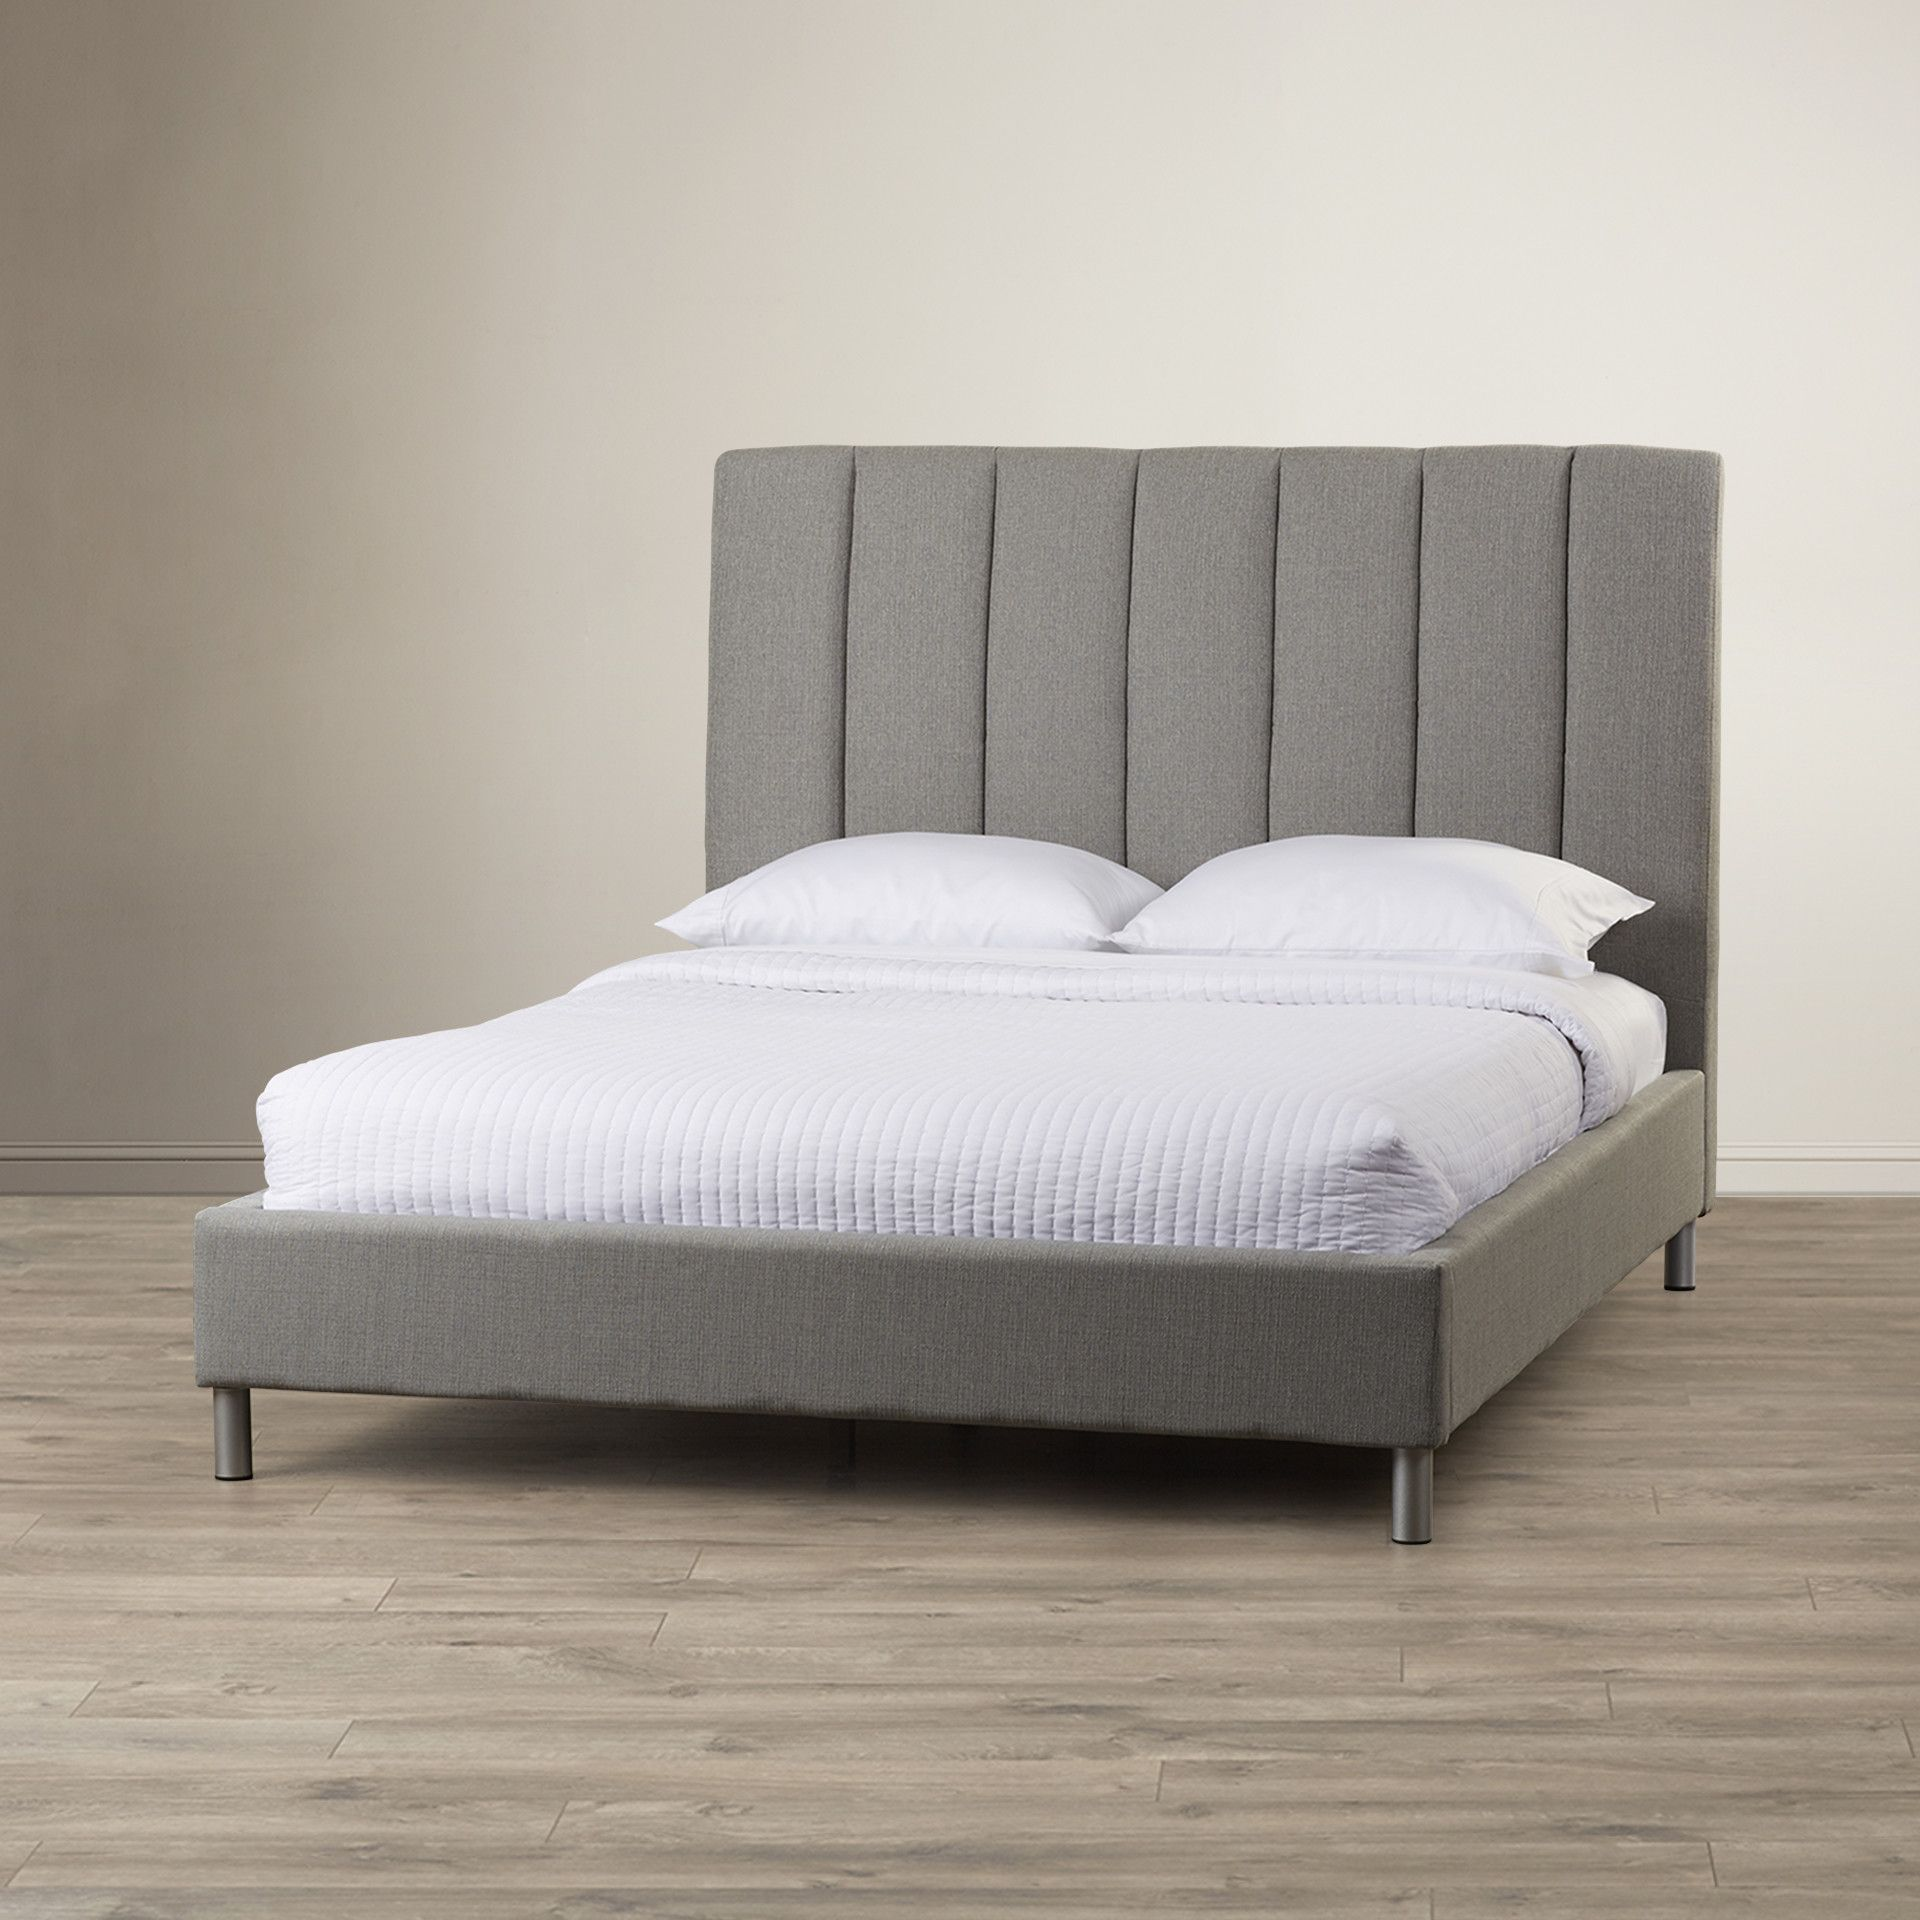 Bay Upholstered Panel Bed Upholstered panel bed, Bed